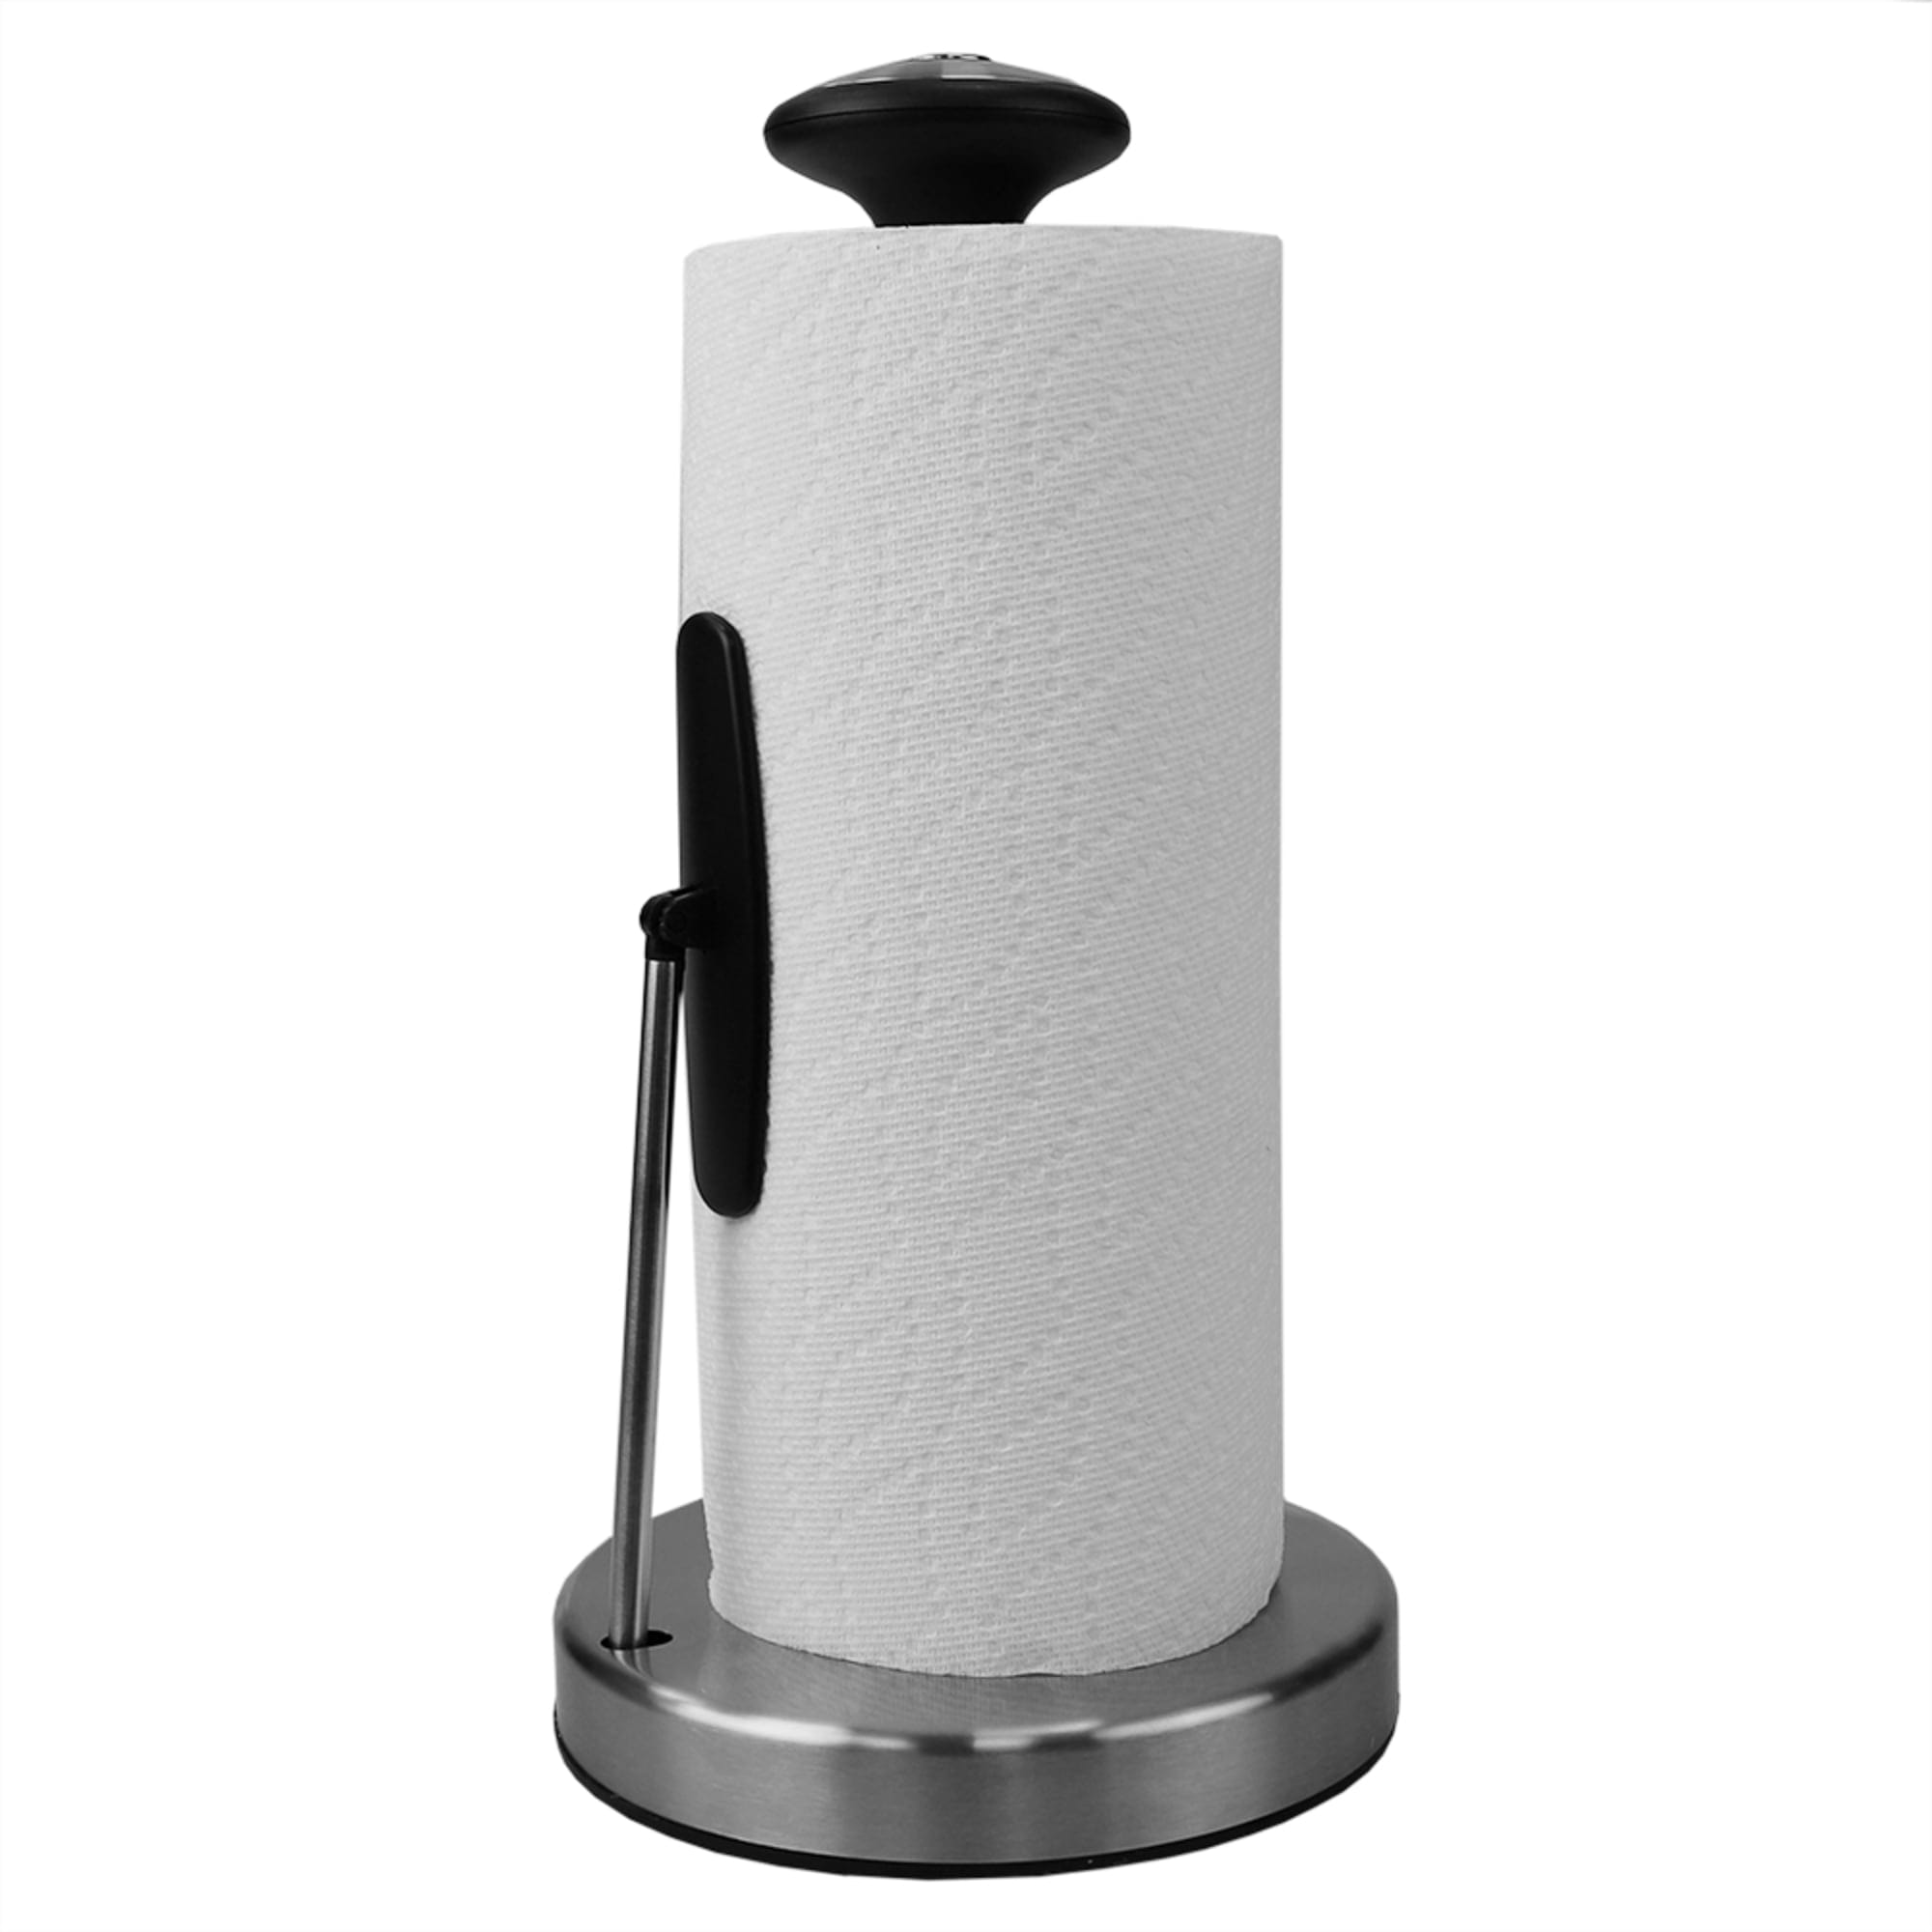 Michael Graves Easy Tear Tension Arm Freestanding Stainless Steel Paper Towel Holder, Silver